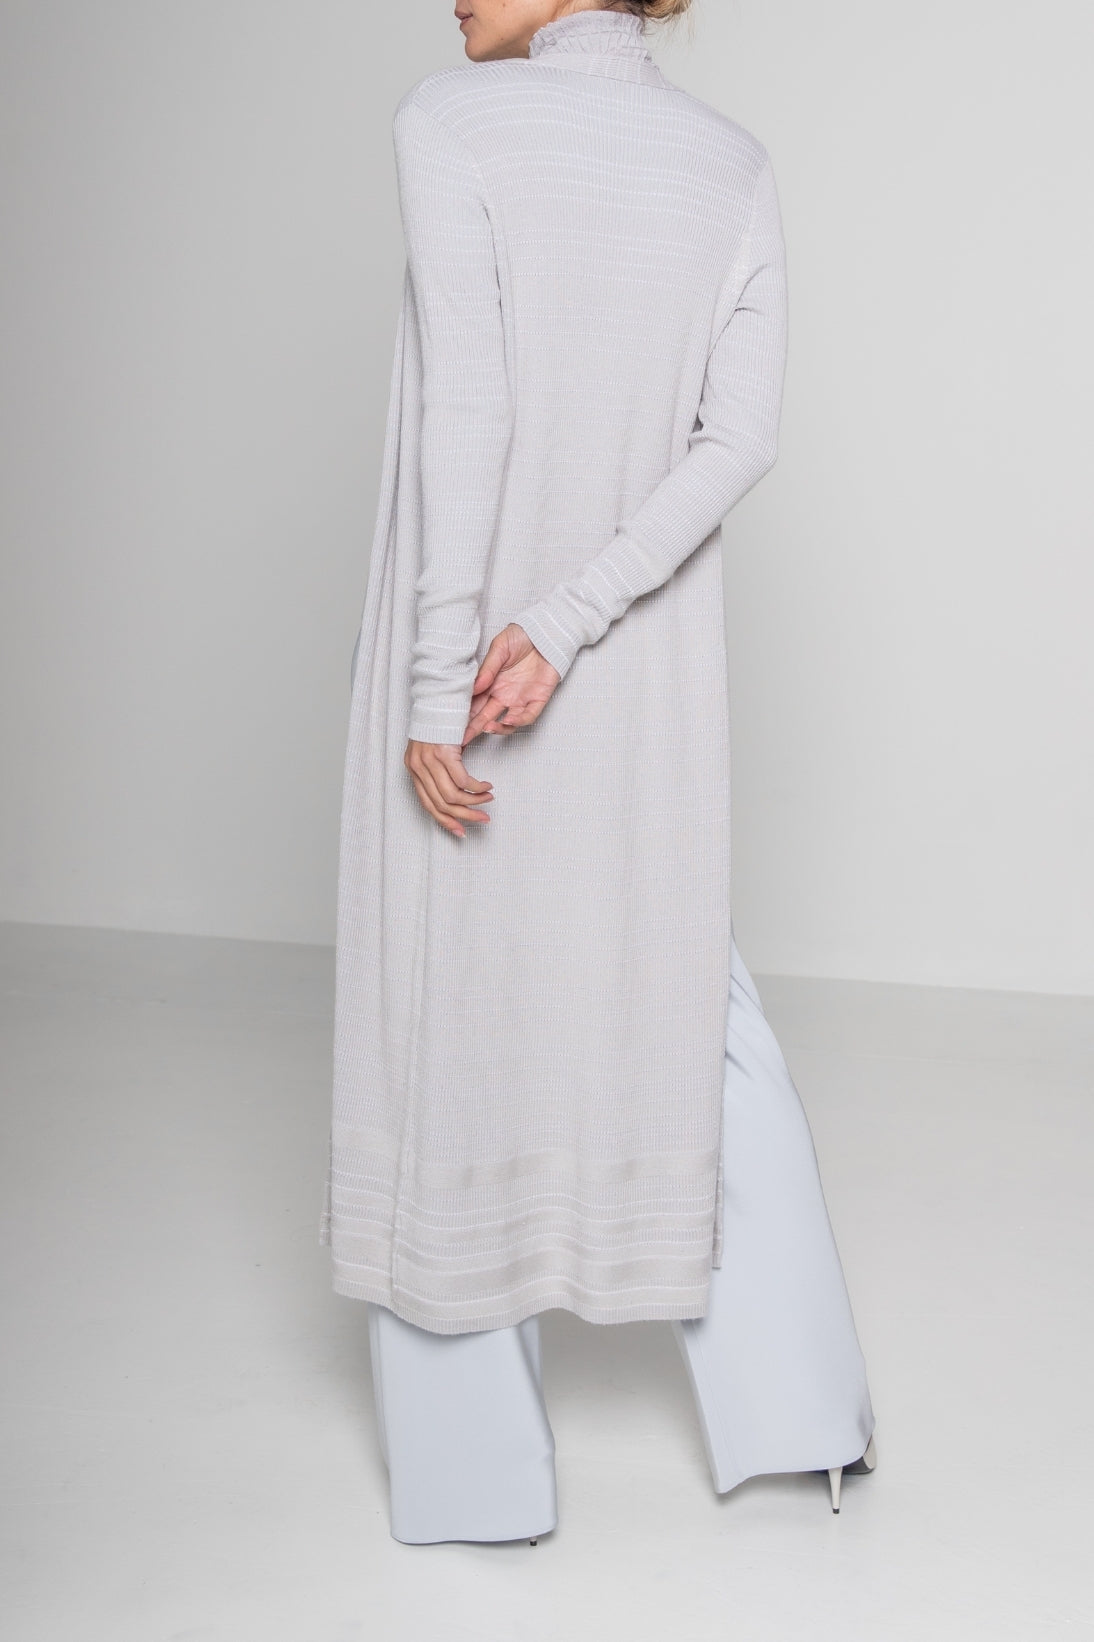 SUPERFINE RIB LONG CARDIGAN